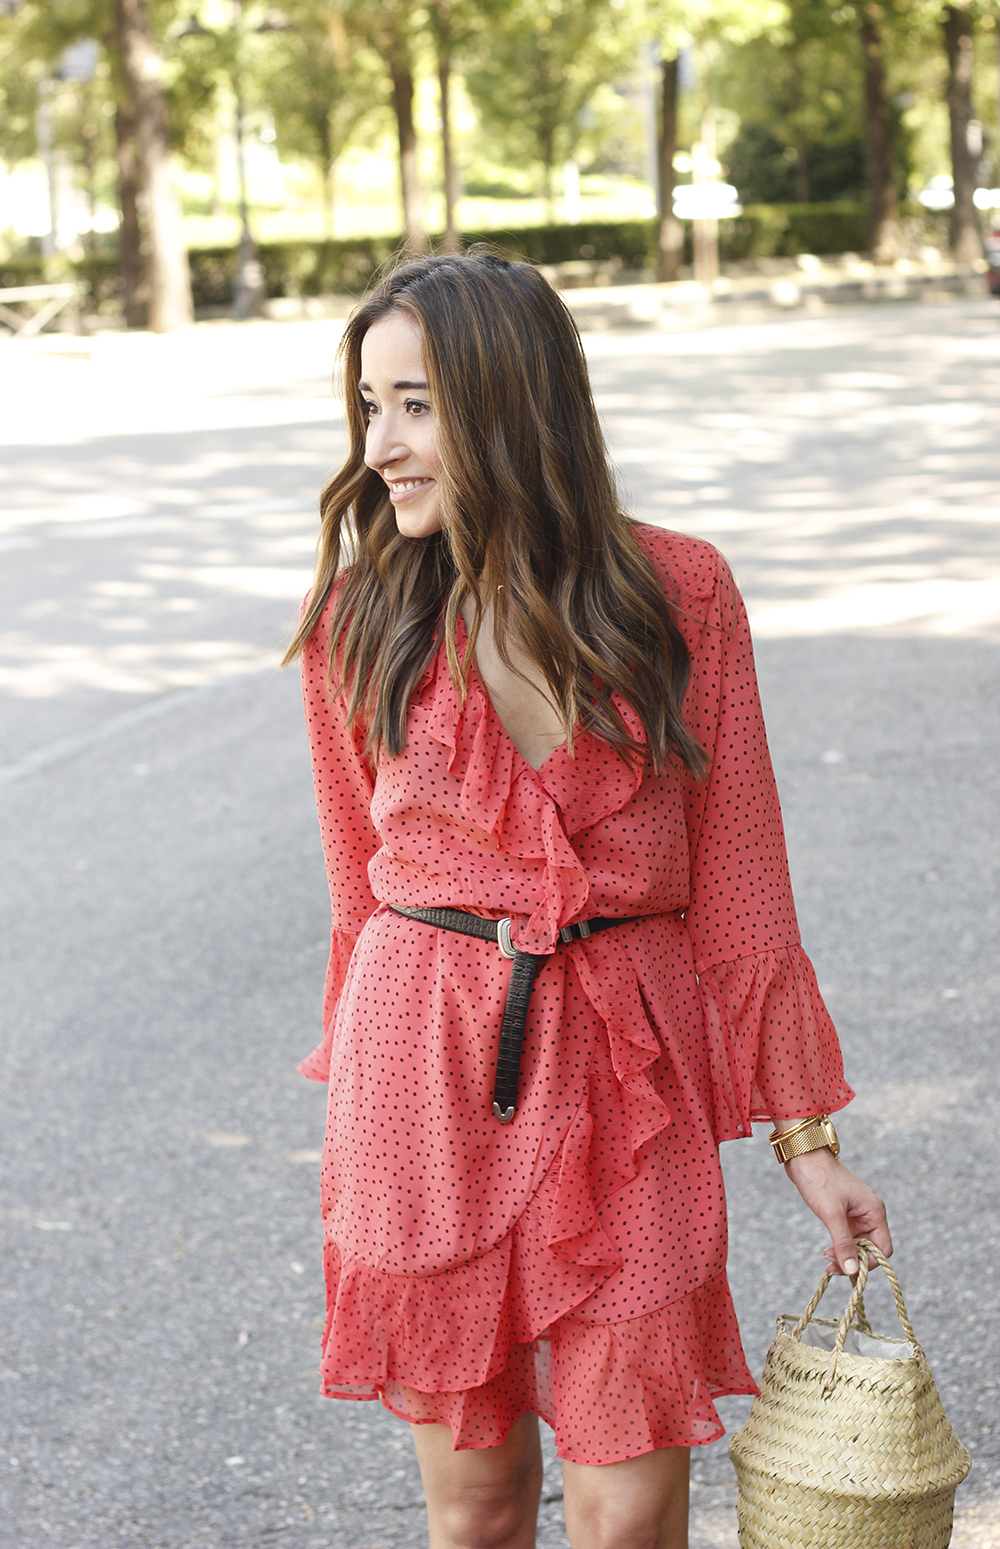 coral dress with dots and frills uterqüe black heels summer outfit style fashion07